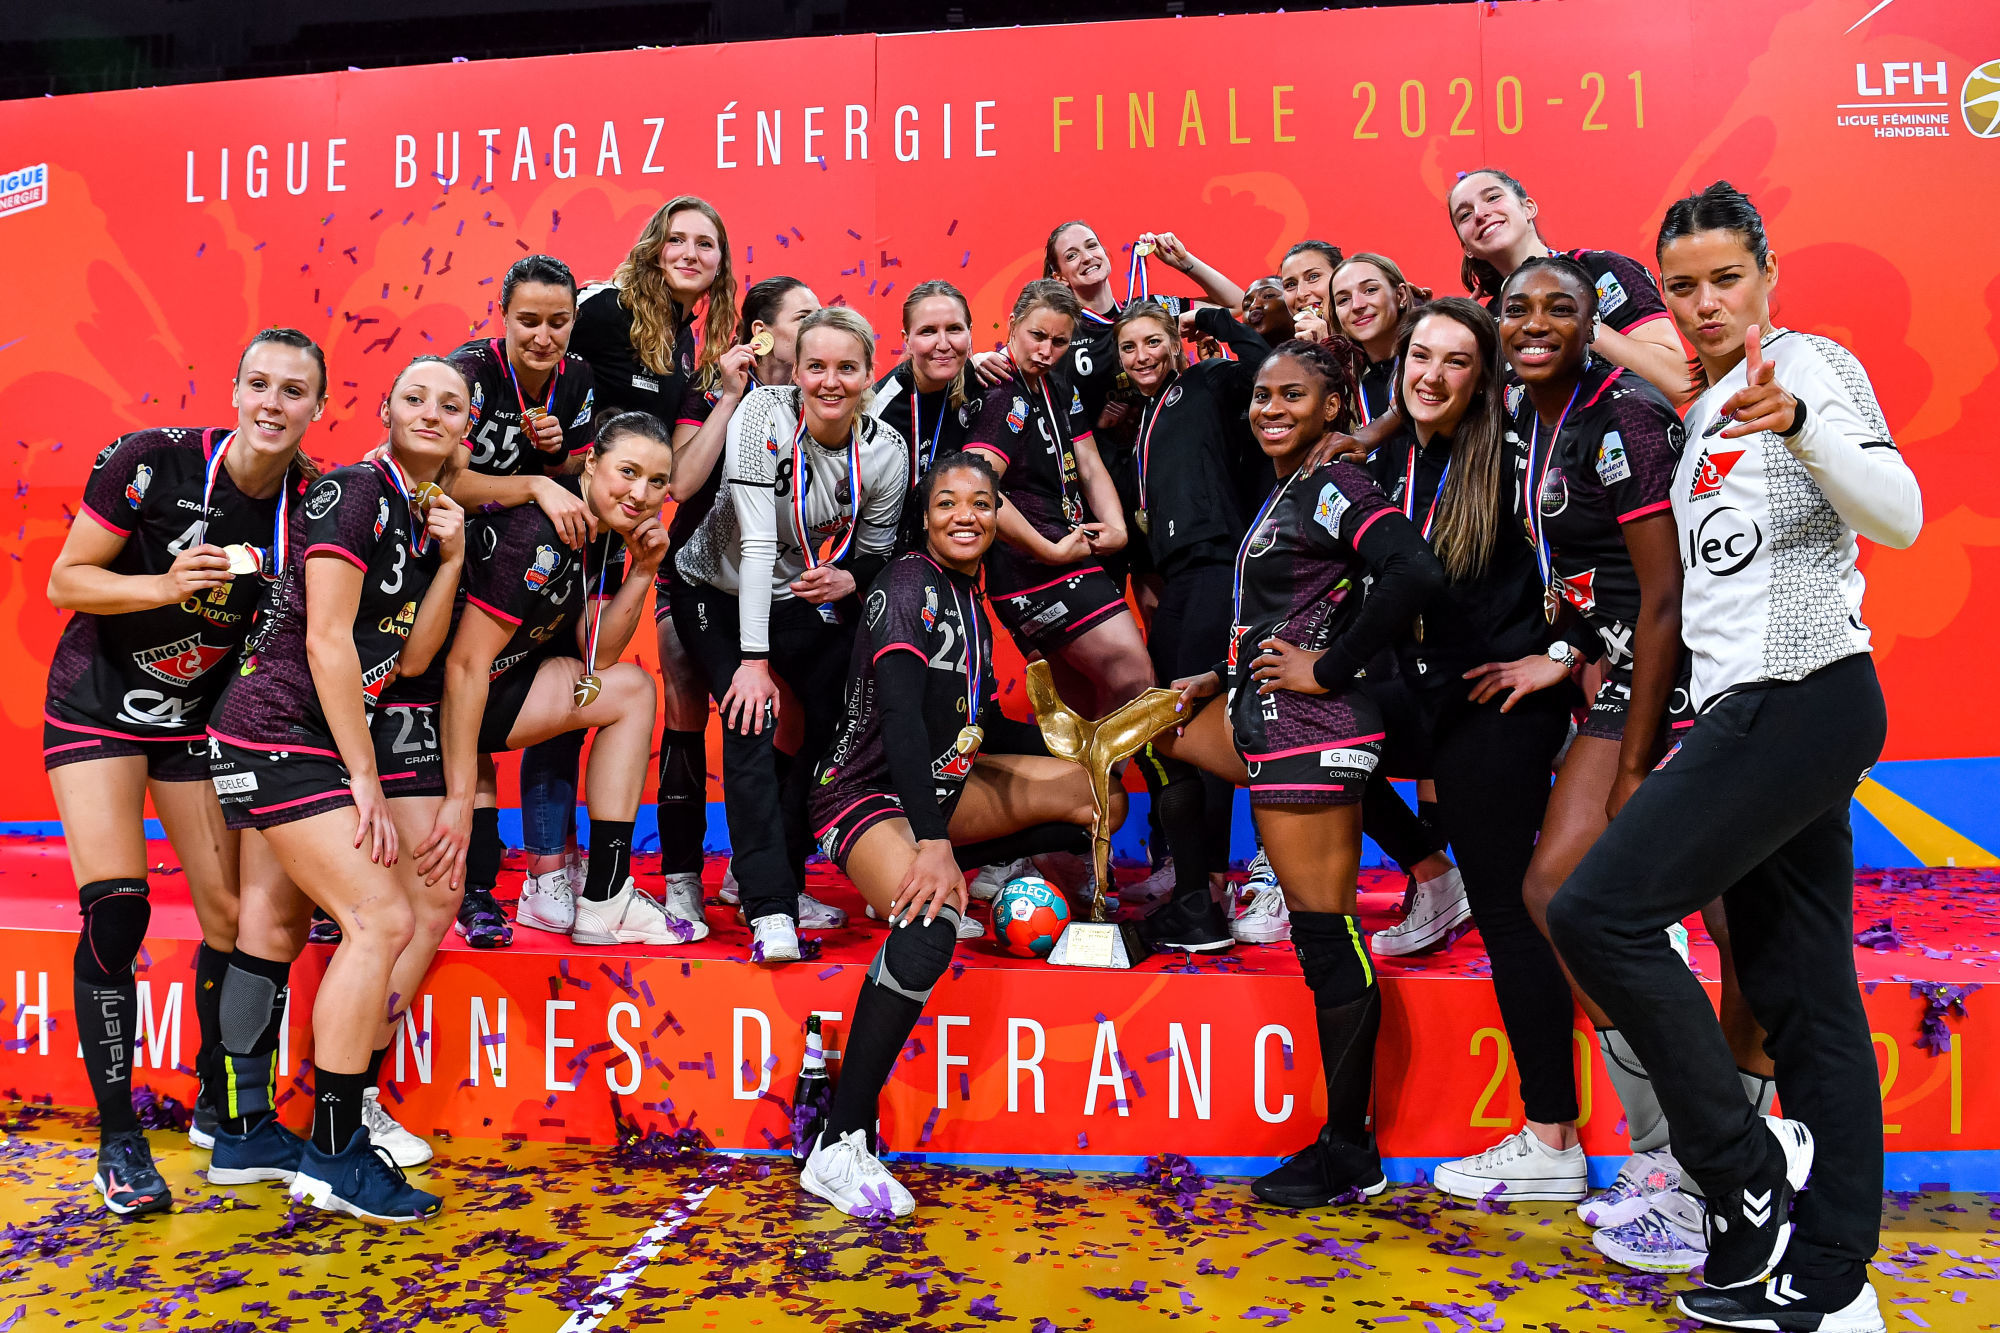 Team of Brest celebrate their victory on the podium with the trophy after the women's Ligue Butagaz Energie final match between Brest and Metz at Brest Arena on May 23, 2021 in Brest, France. (Photo by Baptiste Fernandez/Icon Sport) - --- - Brest (France)